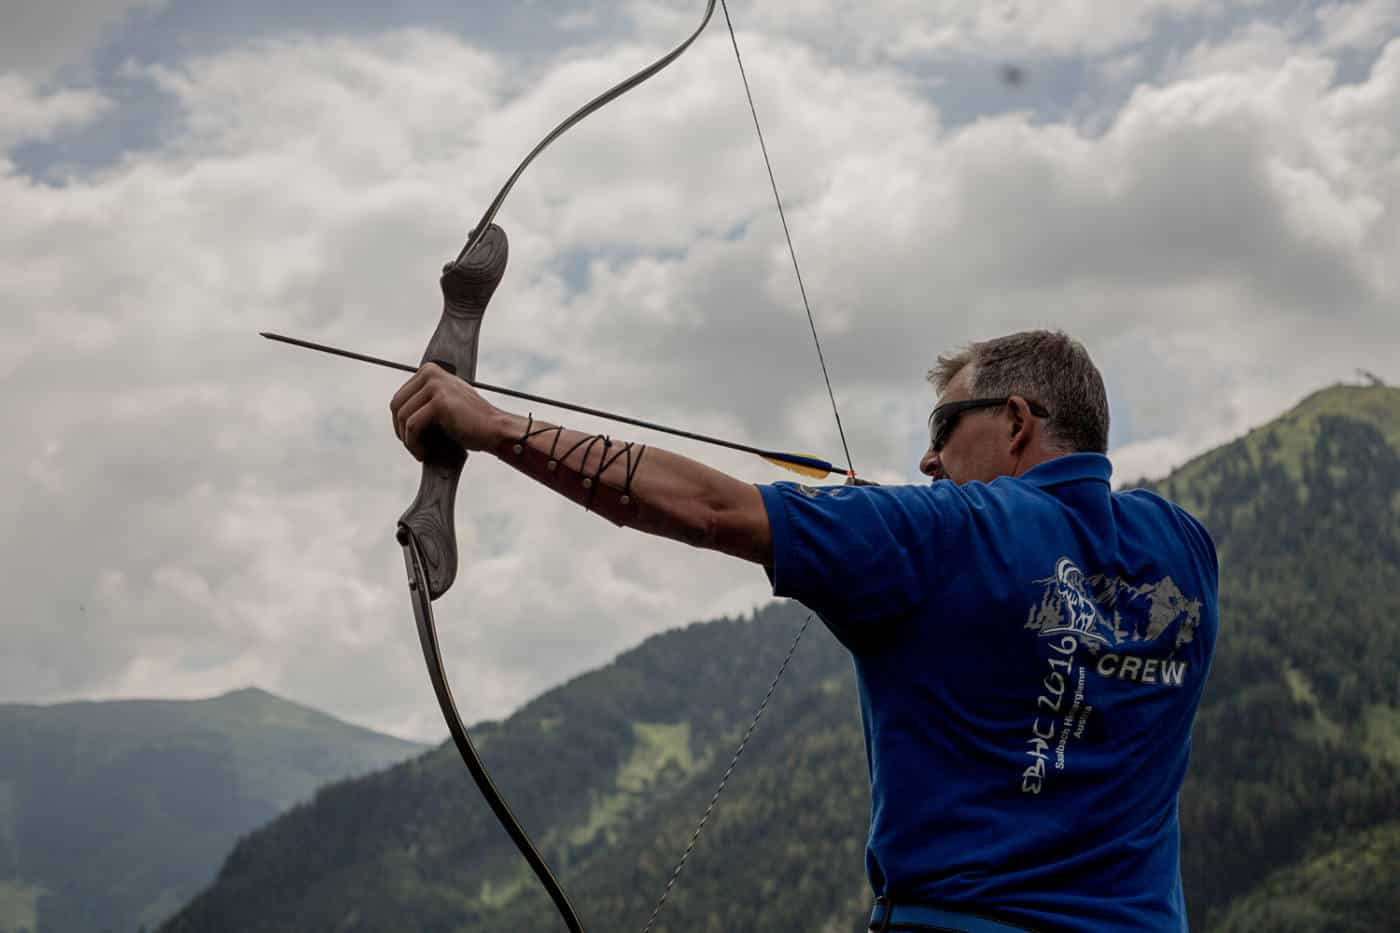 Archery during summer in Saalbach Austria